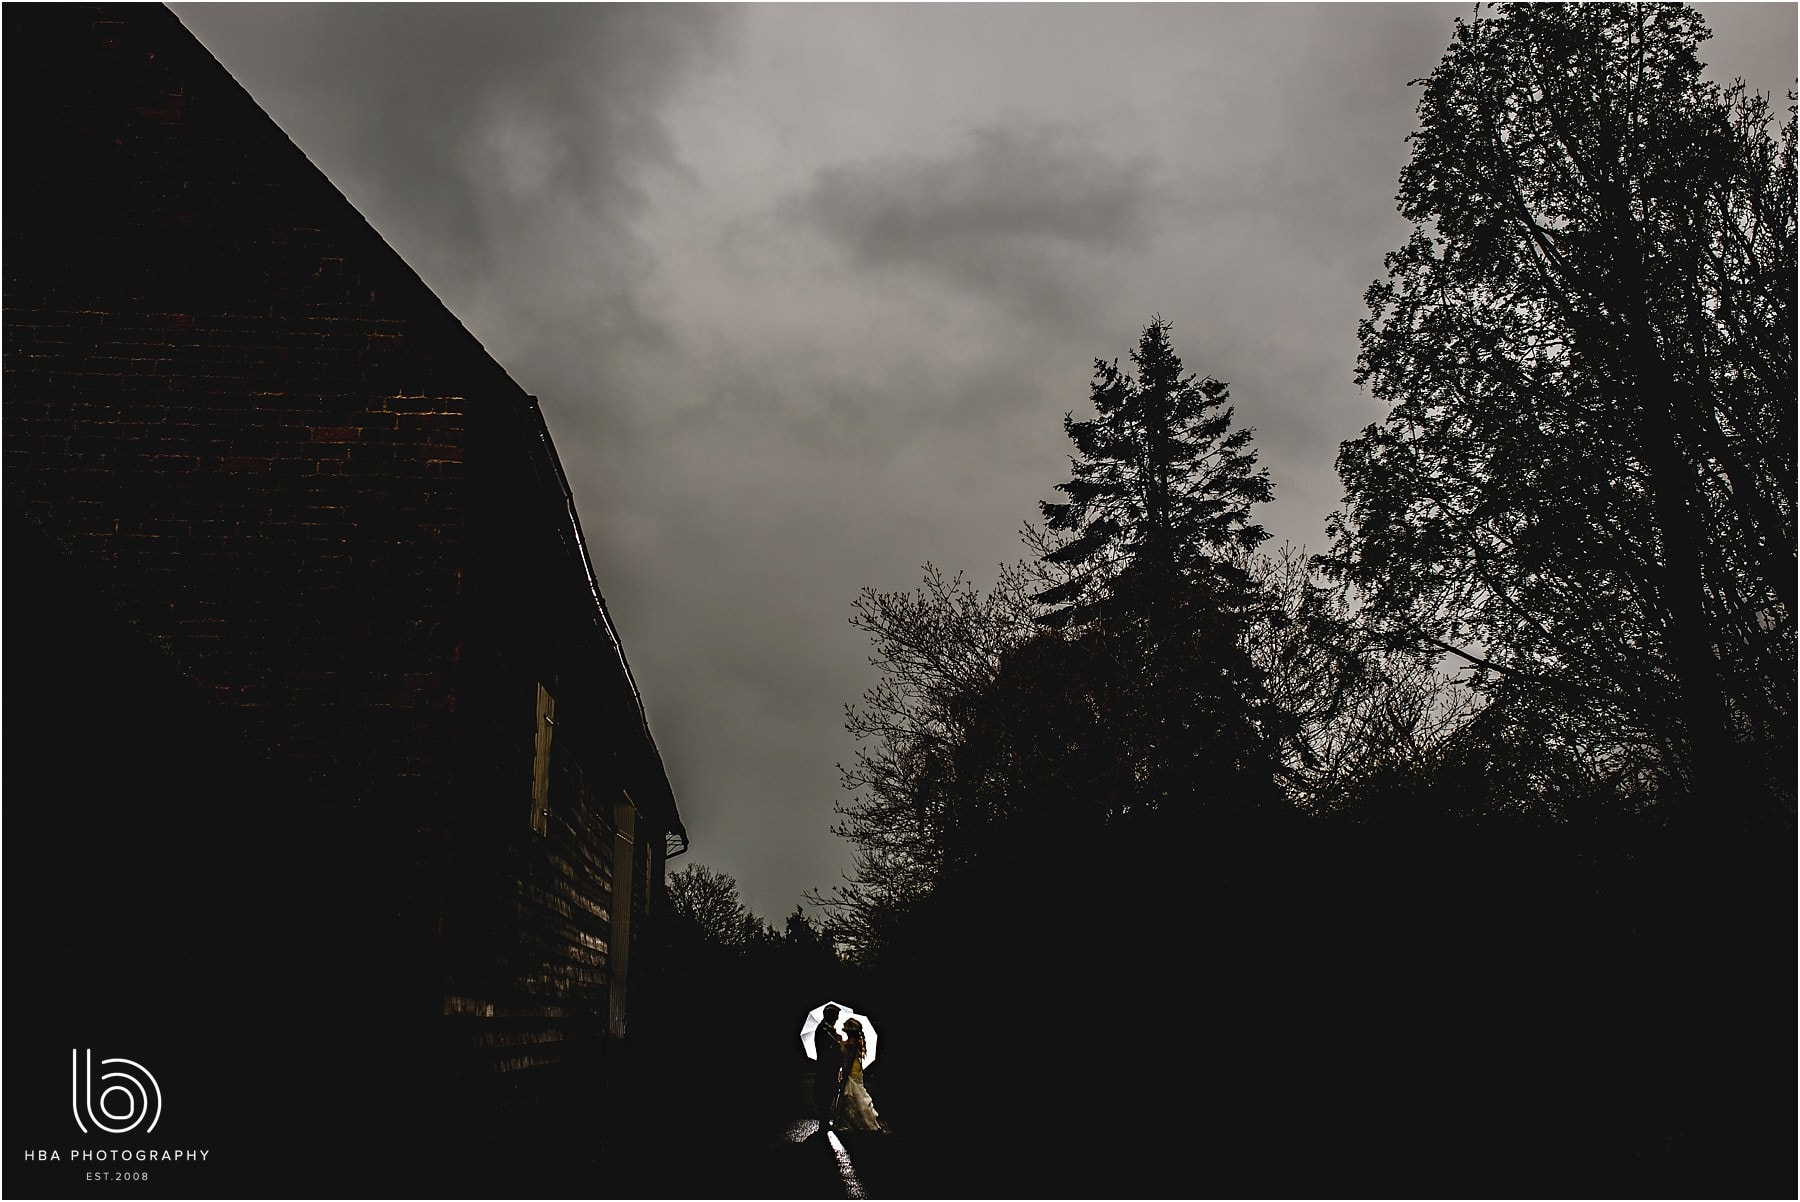 the bride and groom in silhouette in the rain